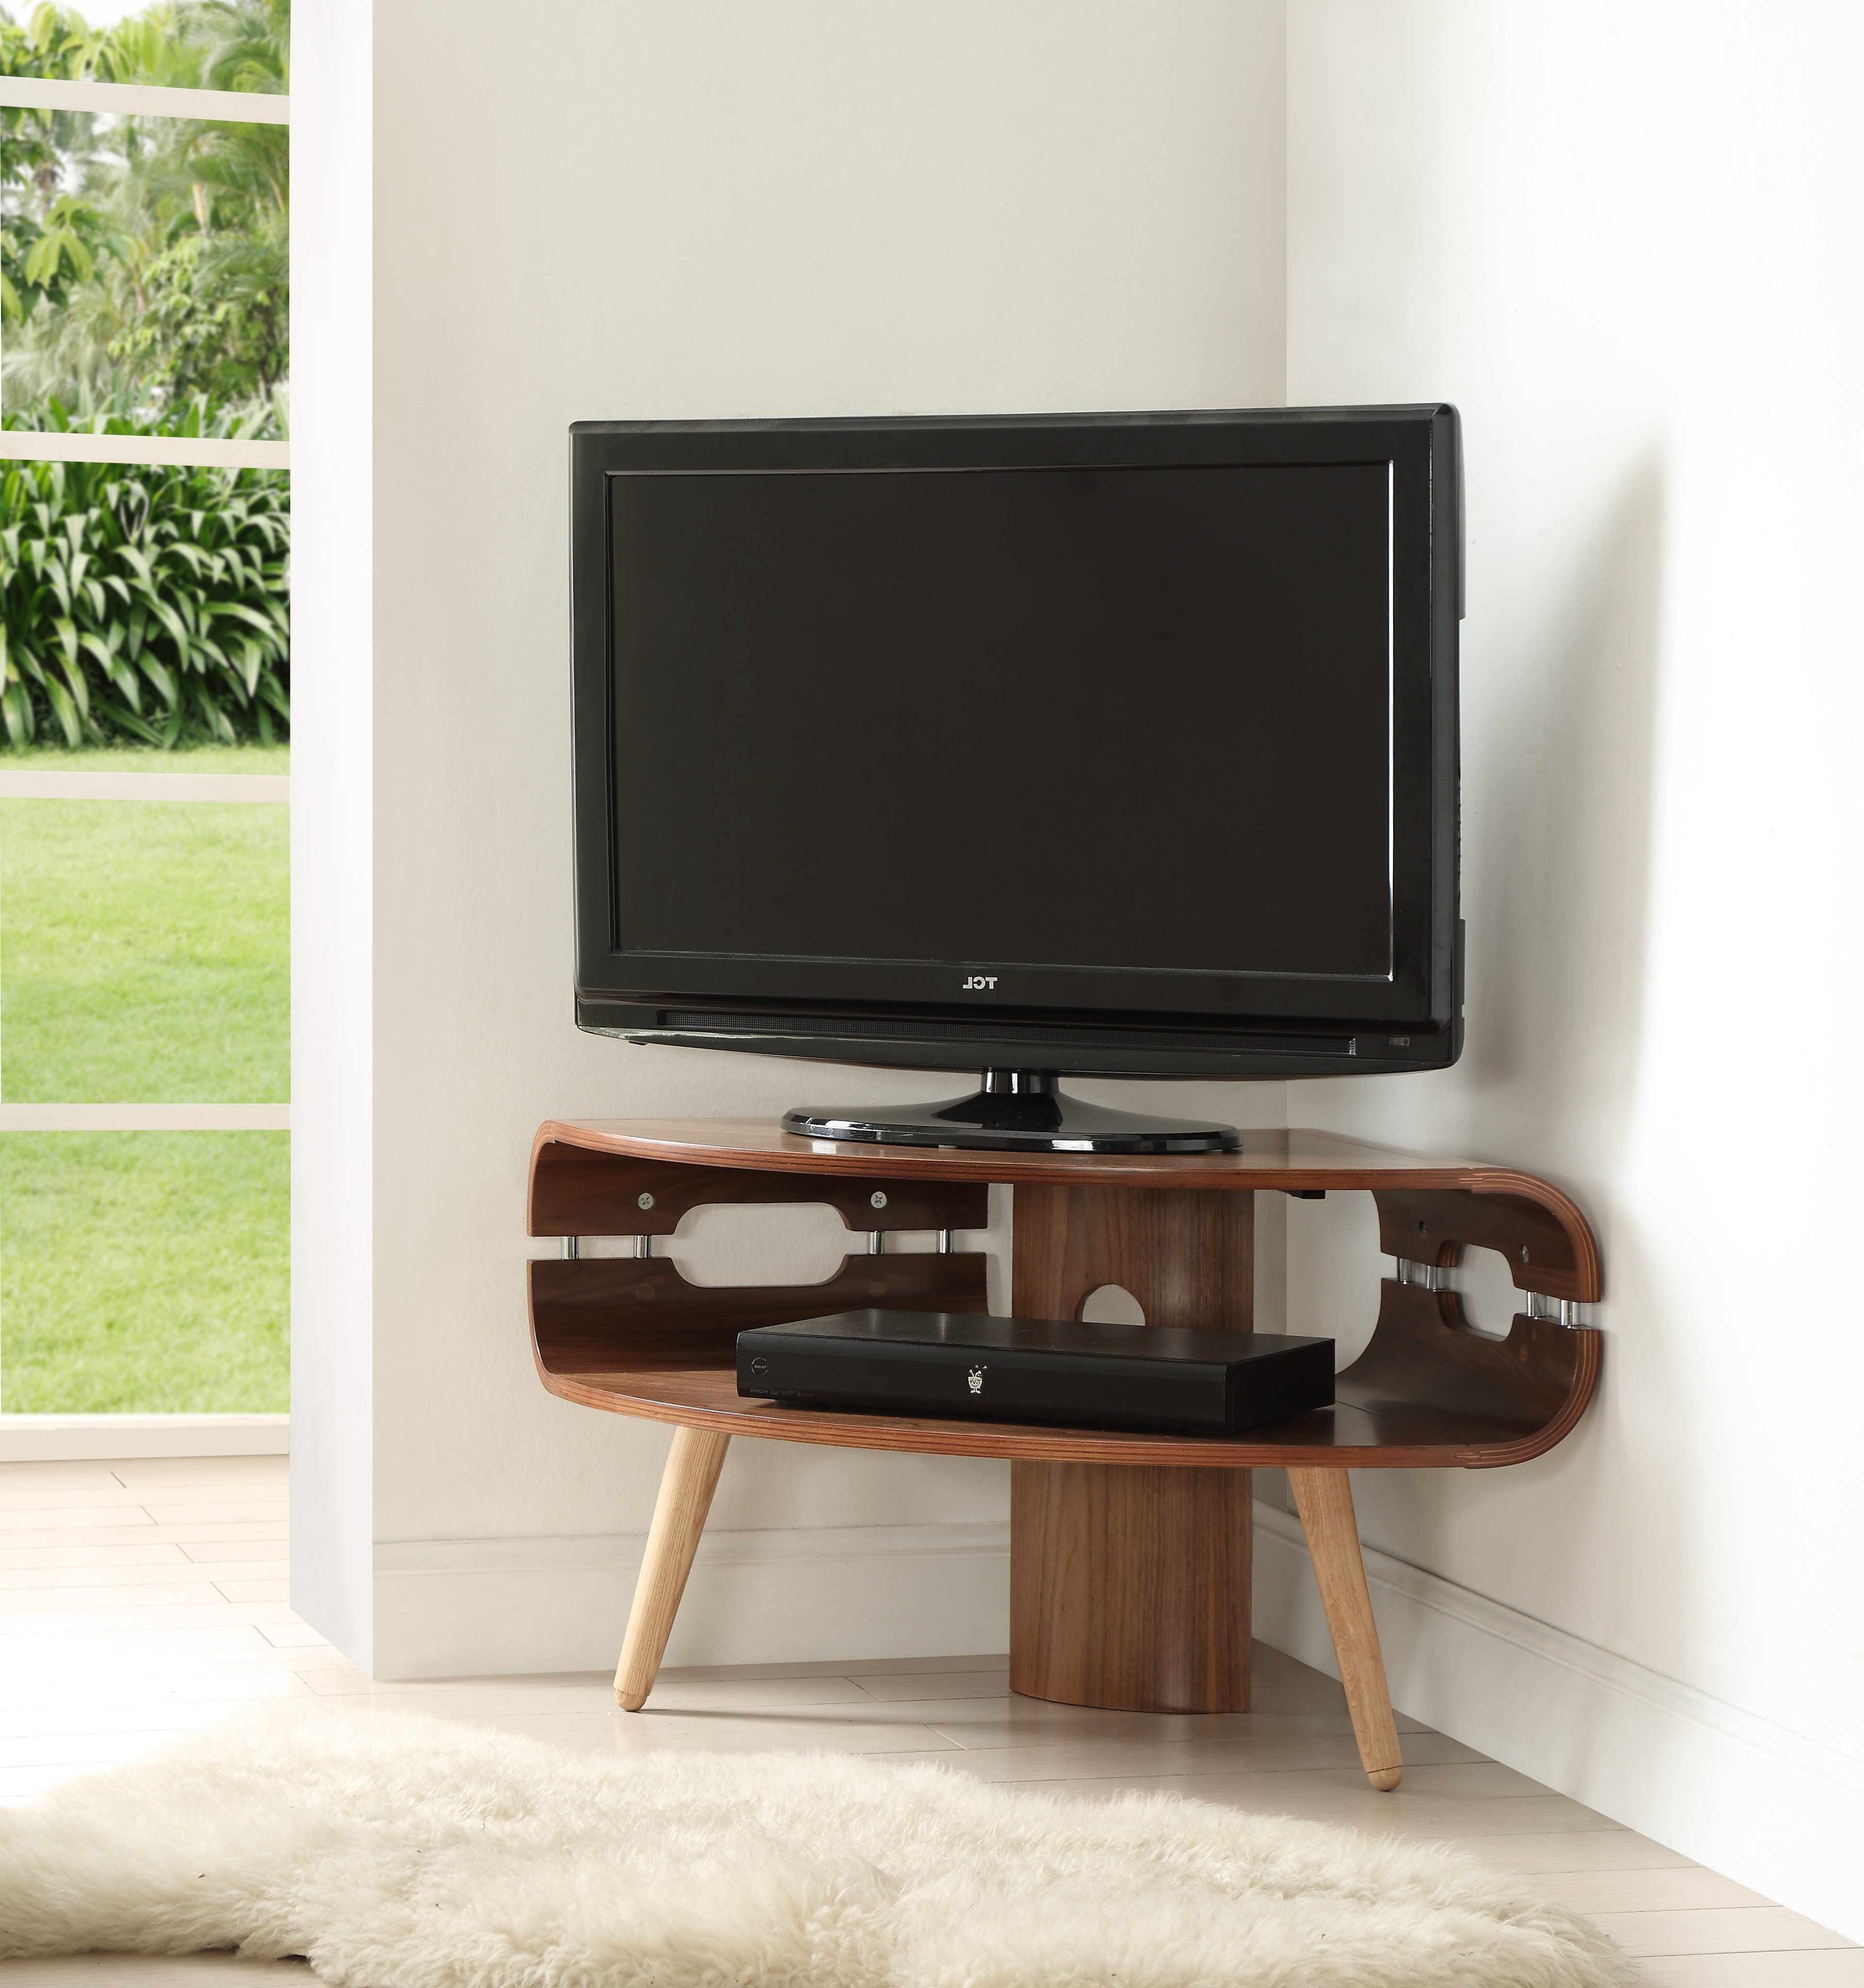 Fashionable Jf701 Corner Tv Stand – Cooks Within Tv Stands For Corner (Gallery 3 of 20)